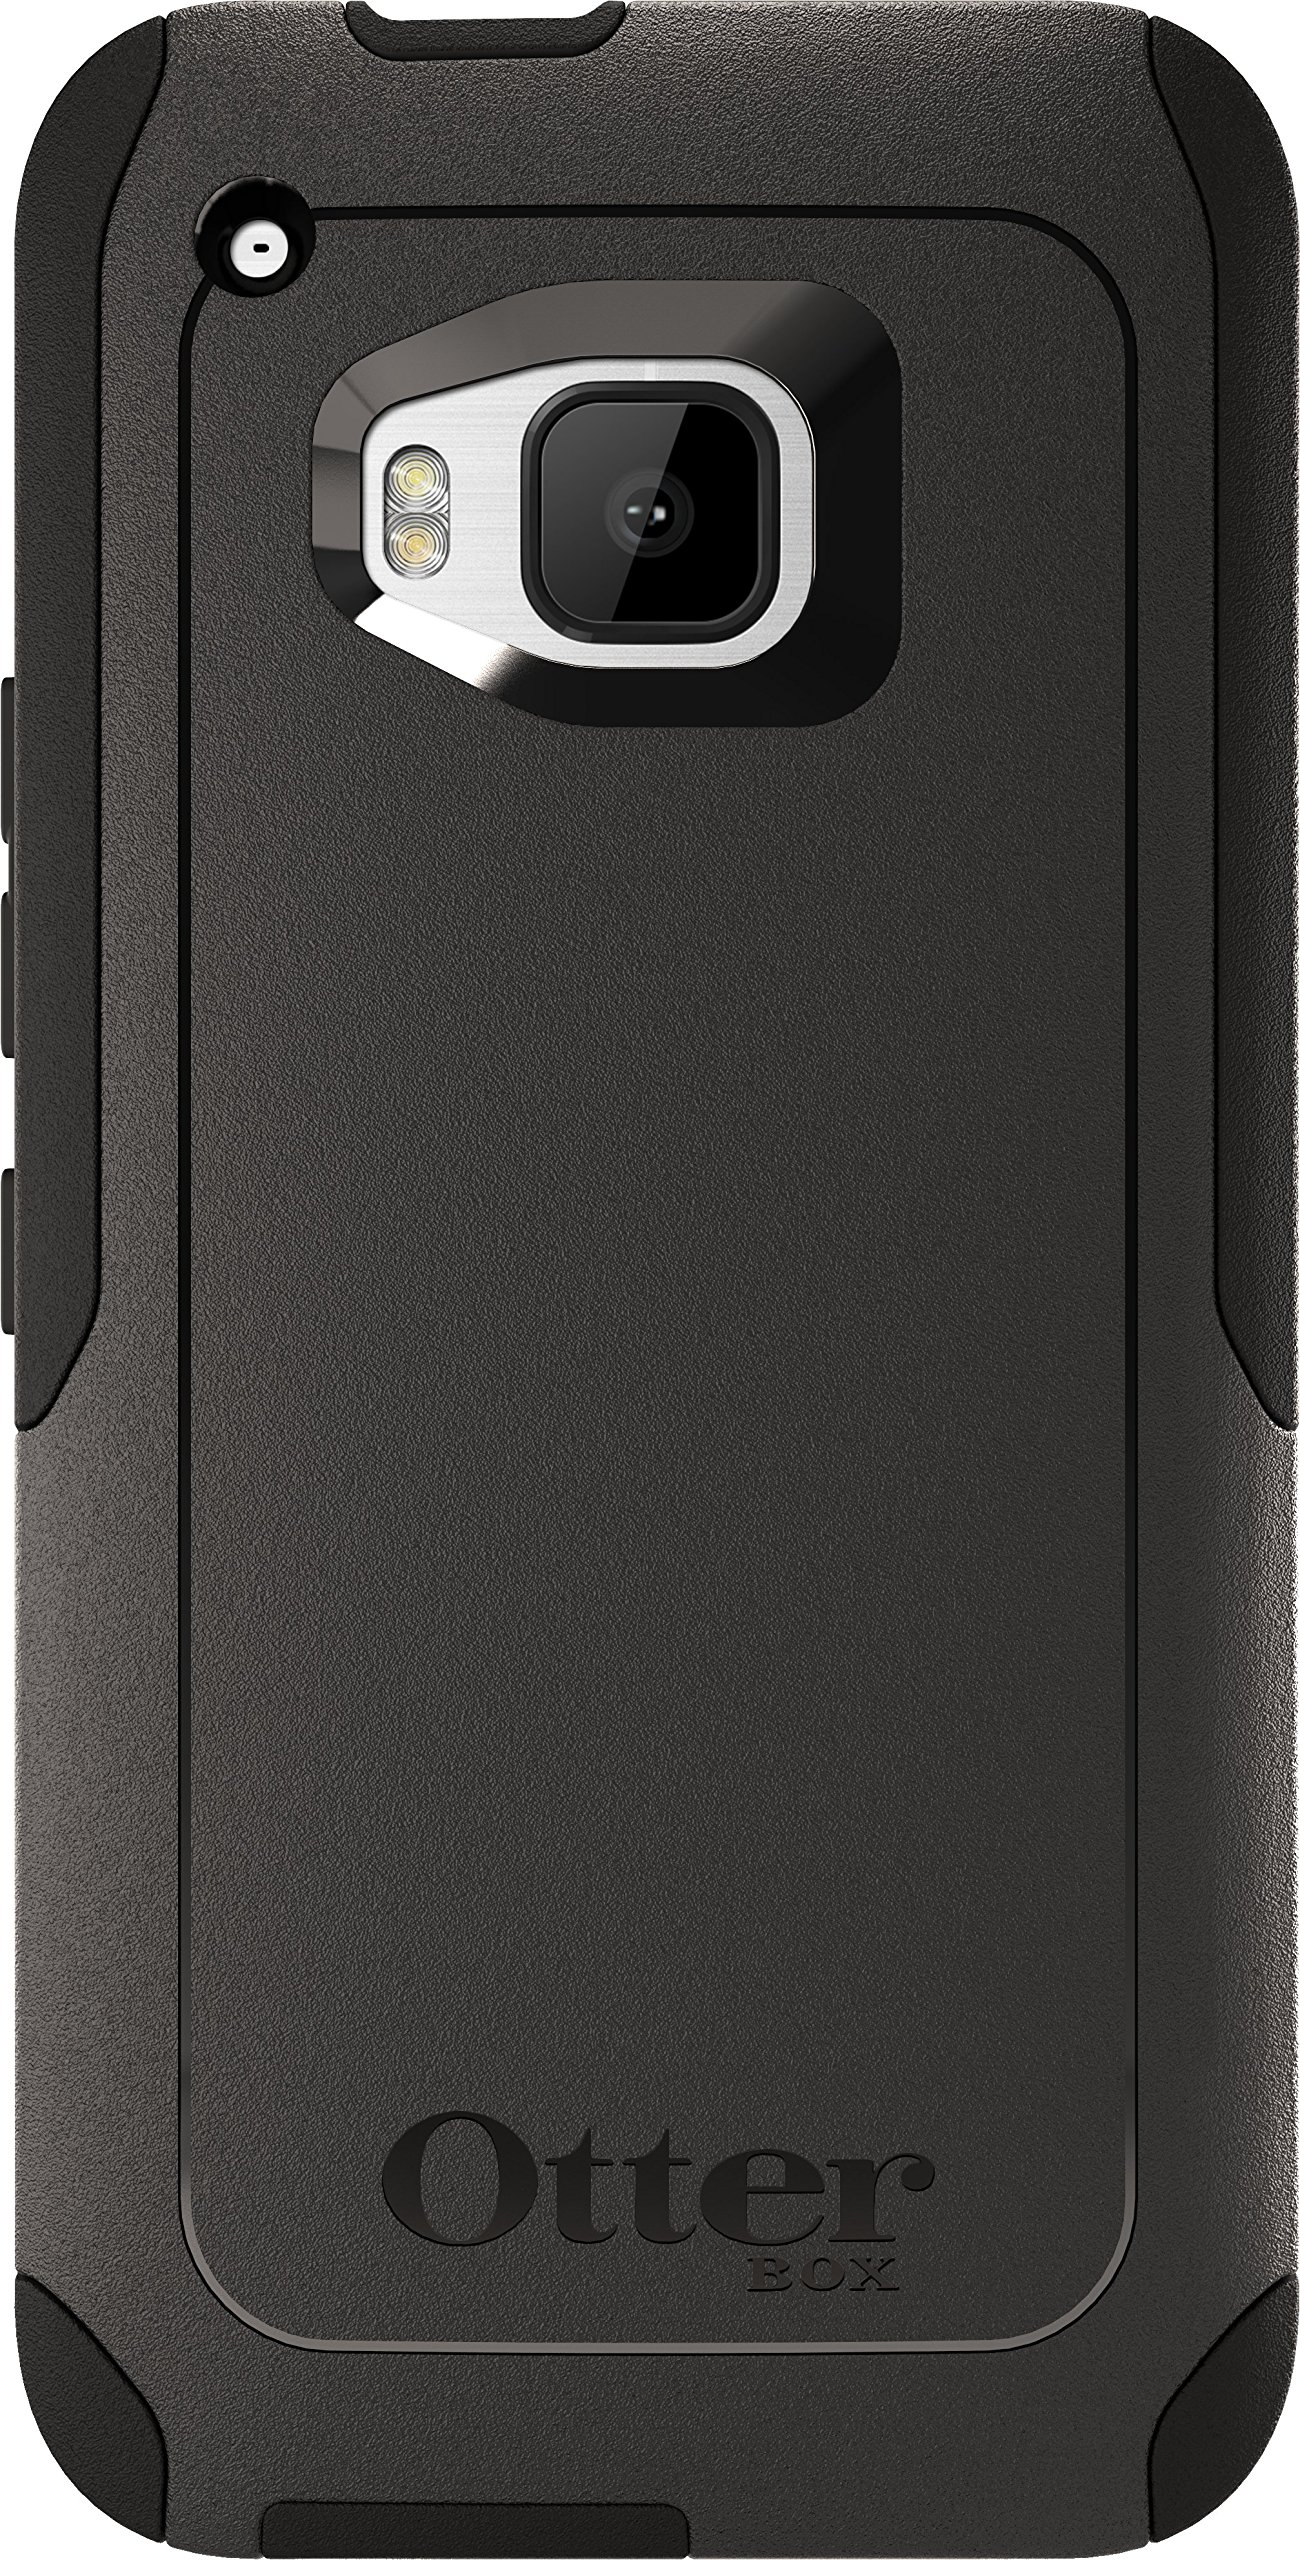 OtterBox Commuter Case for HTC One M9 - Retail Packaging - Black (Black/Black)